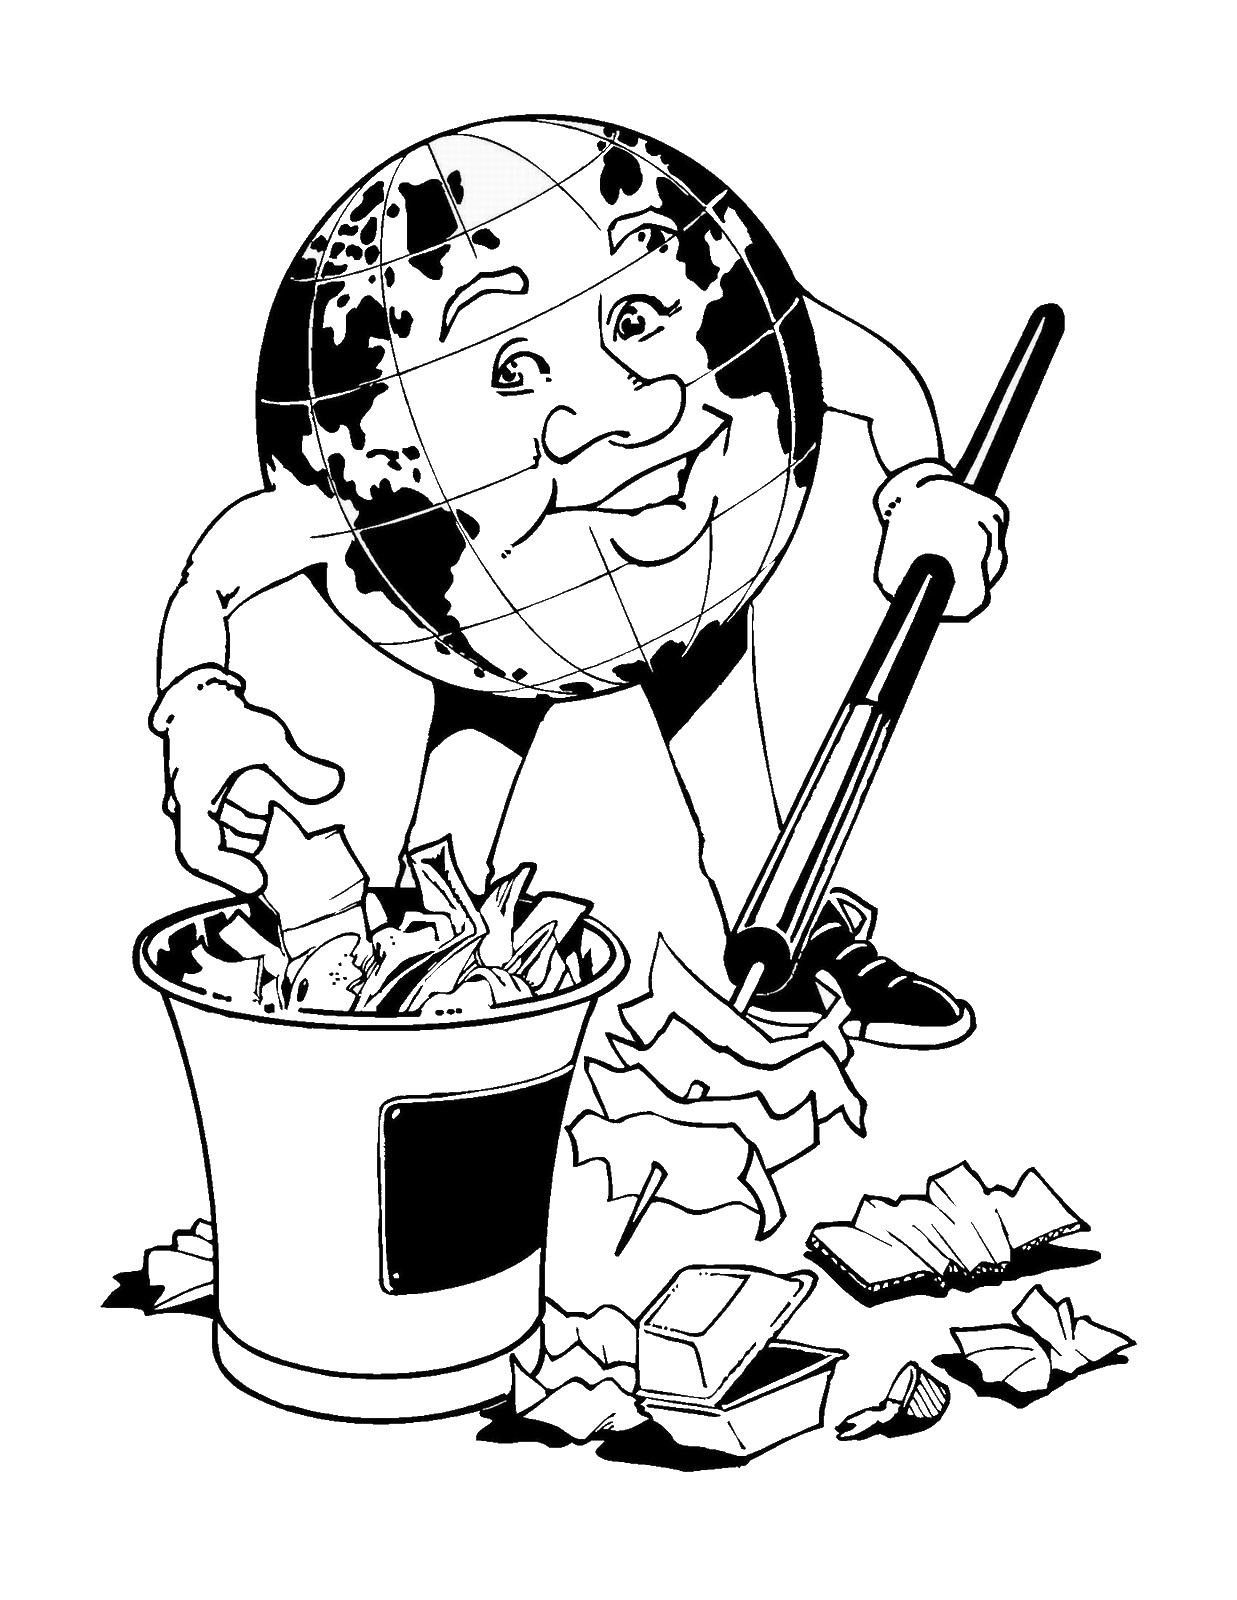 www coloring sheets eco friendly coloring pages coloring sheets www